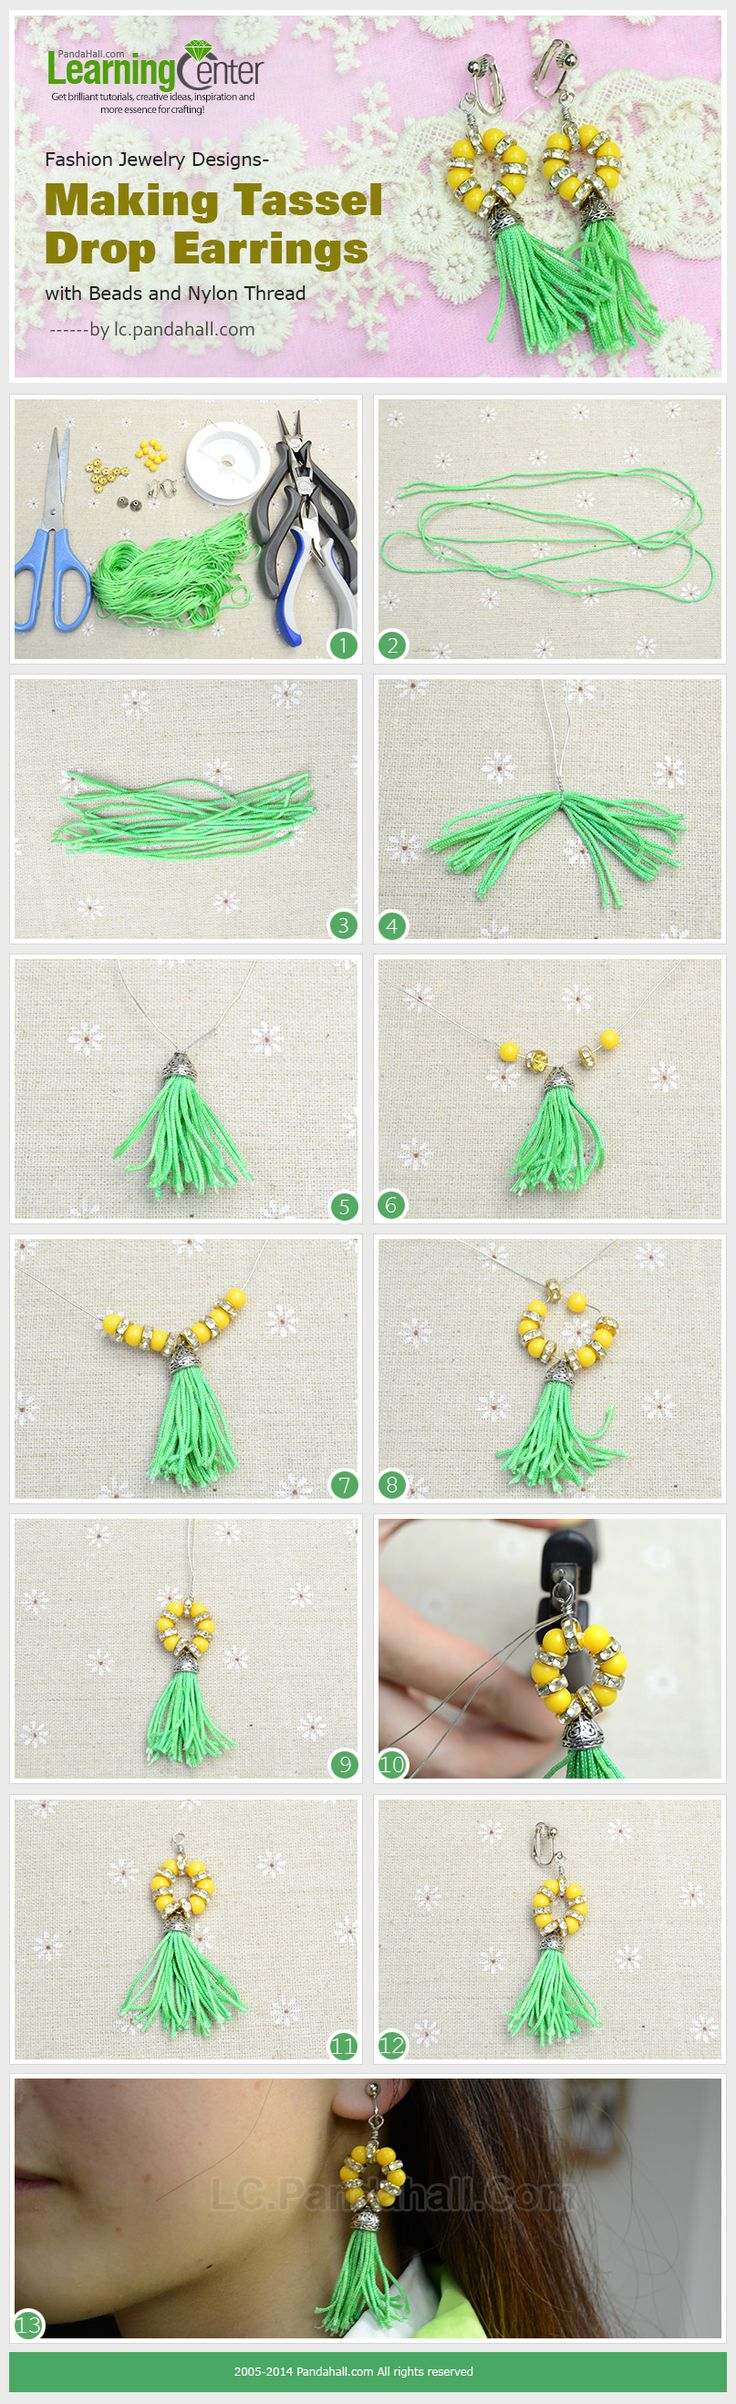 Making Tassel Drop Earrings With Beads And Nylon Thread